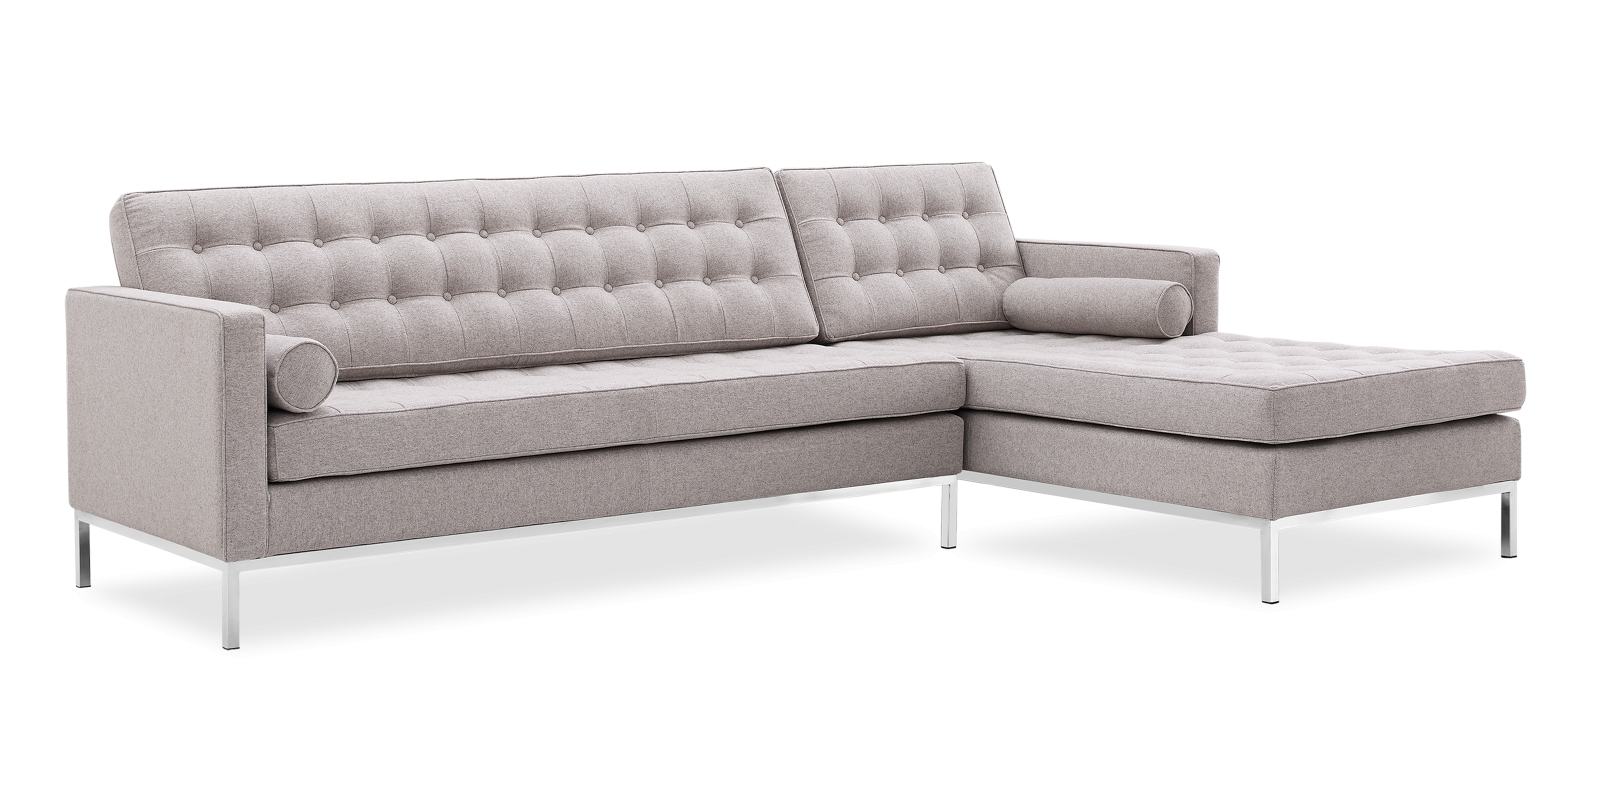 Florence Knoll Style Corner Sofa All With Regard To Florence Knoll Style Sofas (View 8 of 15)